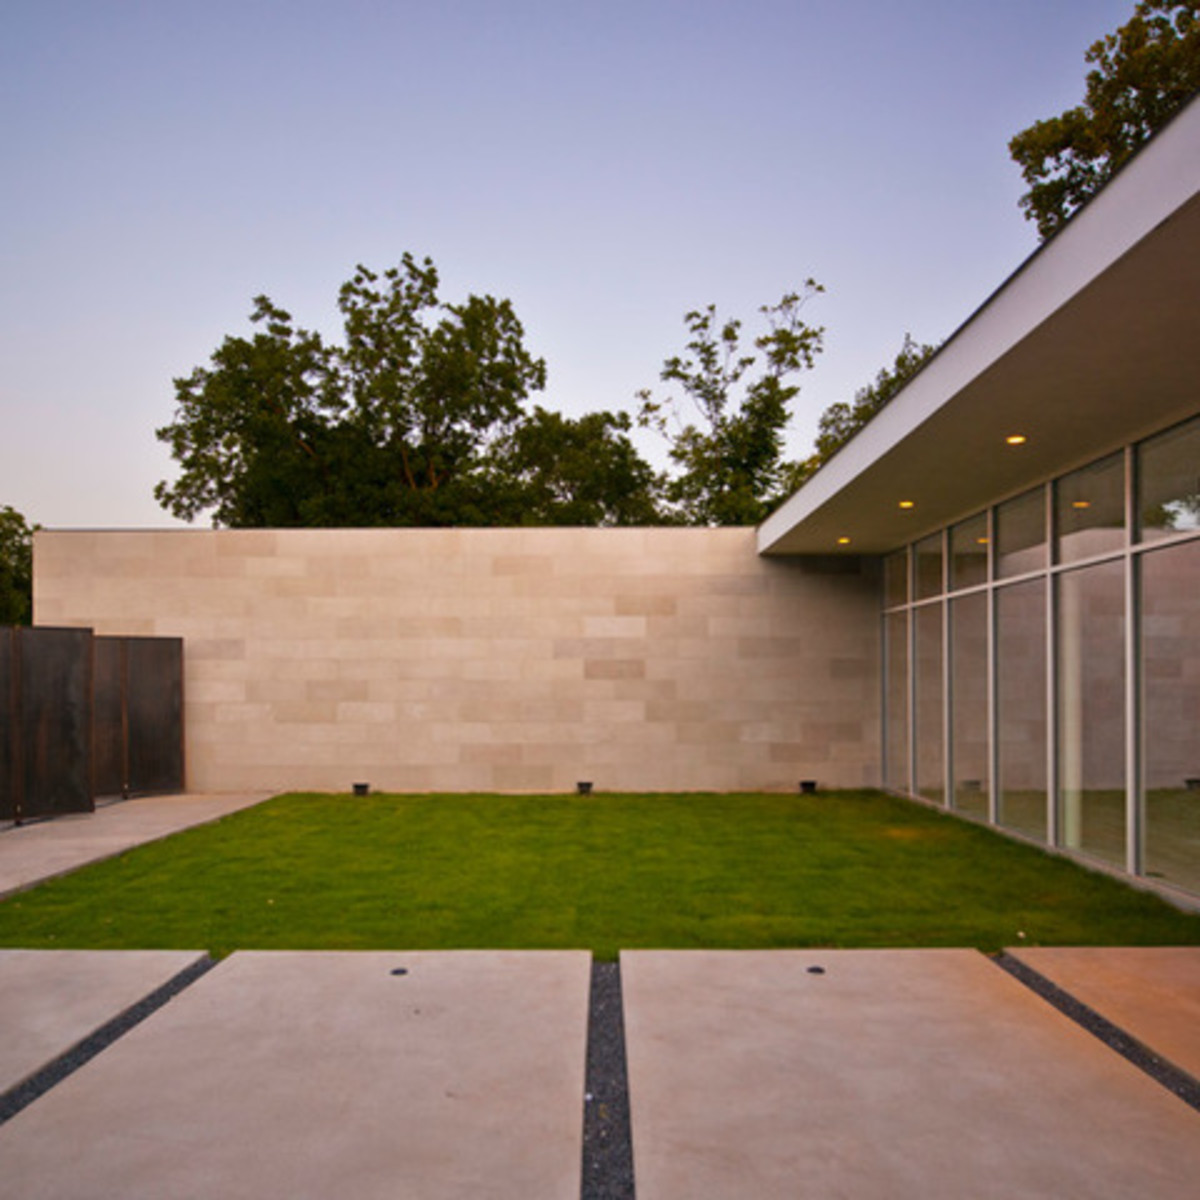 Houzz Dallas house home modern minimalism June 2016 courtyard